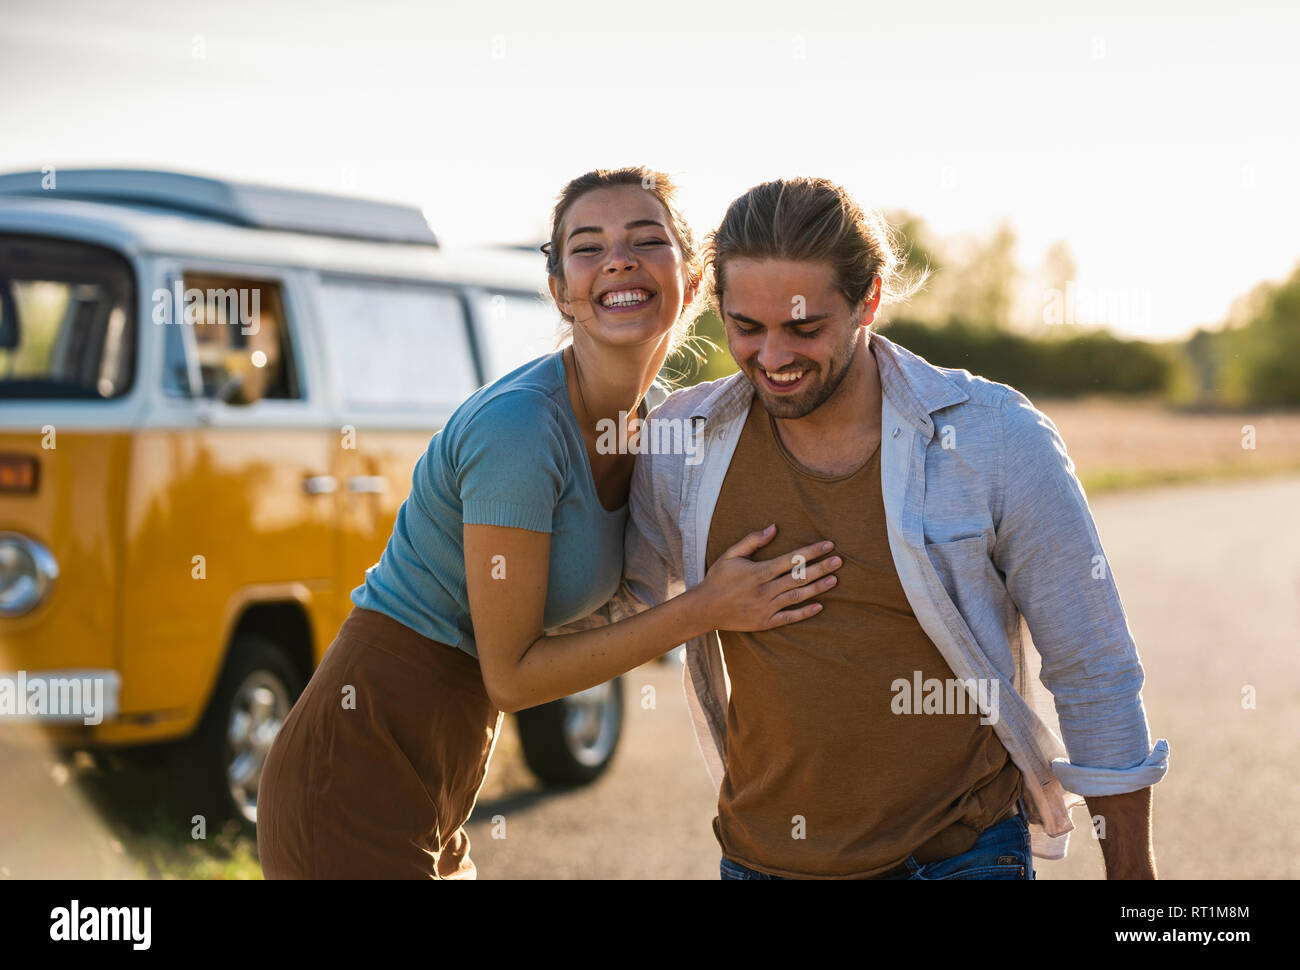 Happy couple doing a road trip with a camper, embracing on the road Stock Photo